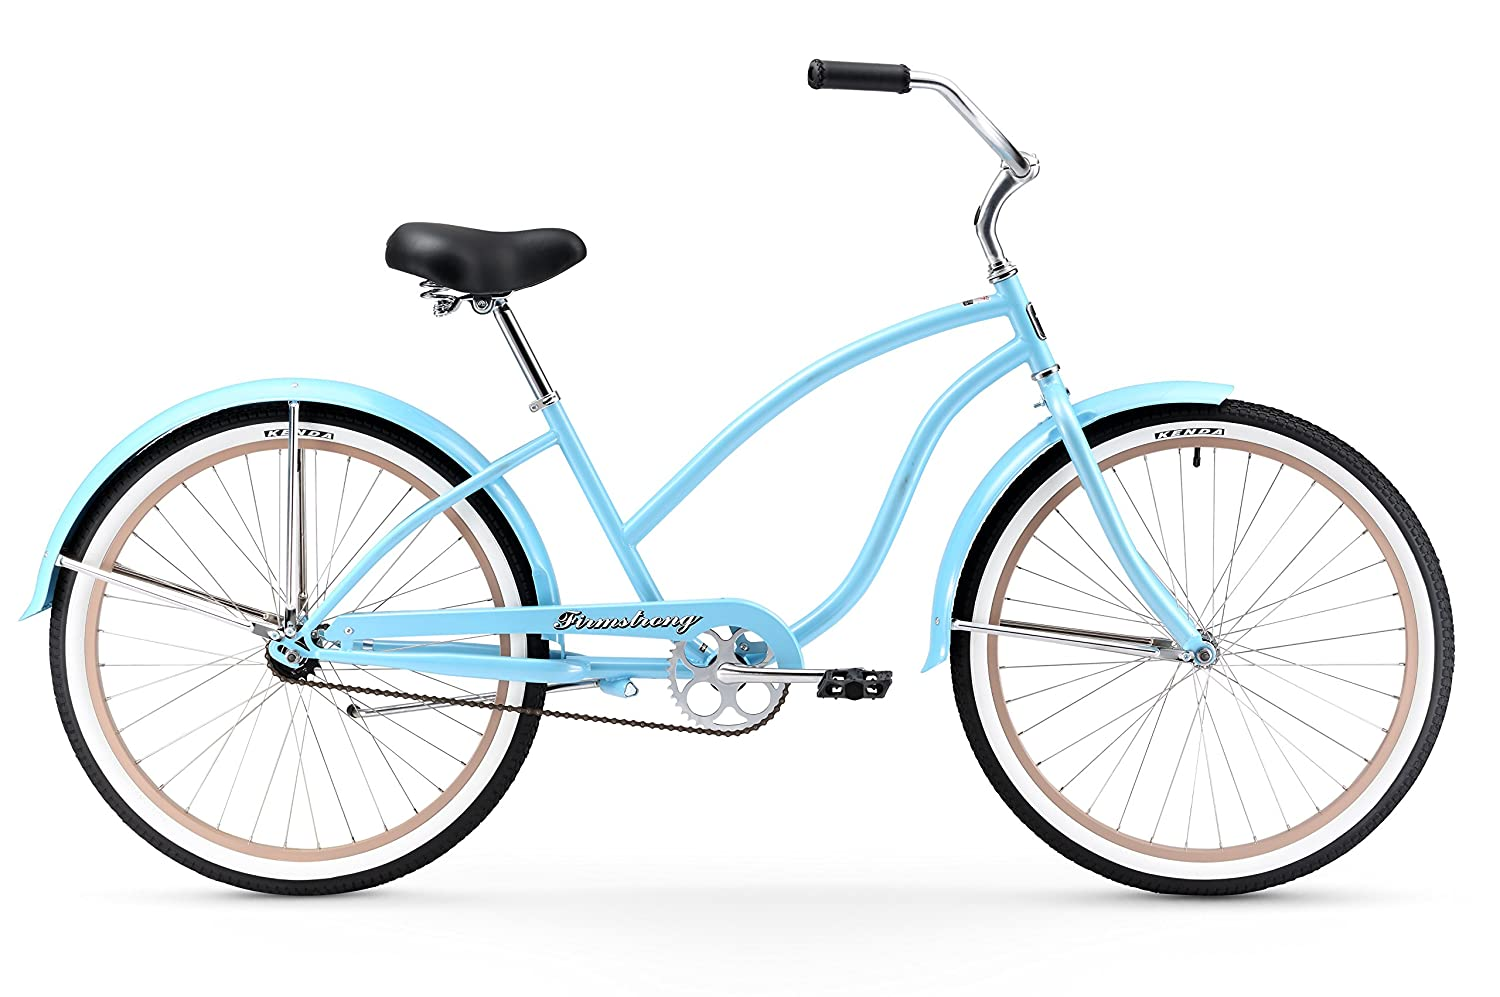 Firmstrong Chief Lady Beach Cruiser Bicycle, 26-Inch